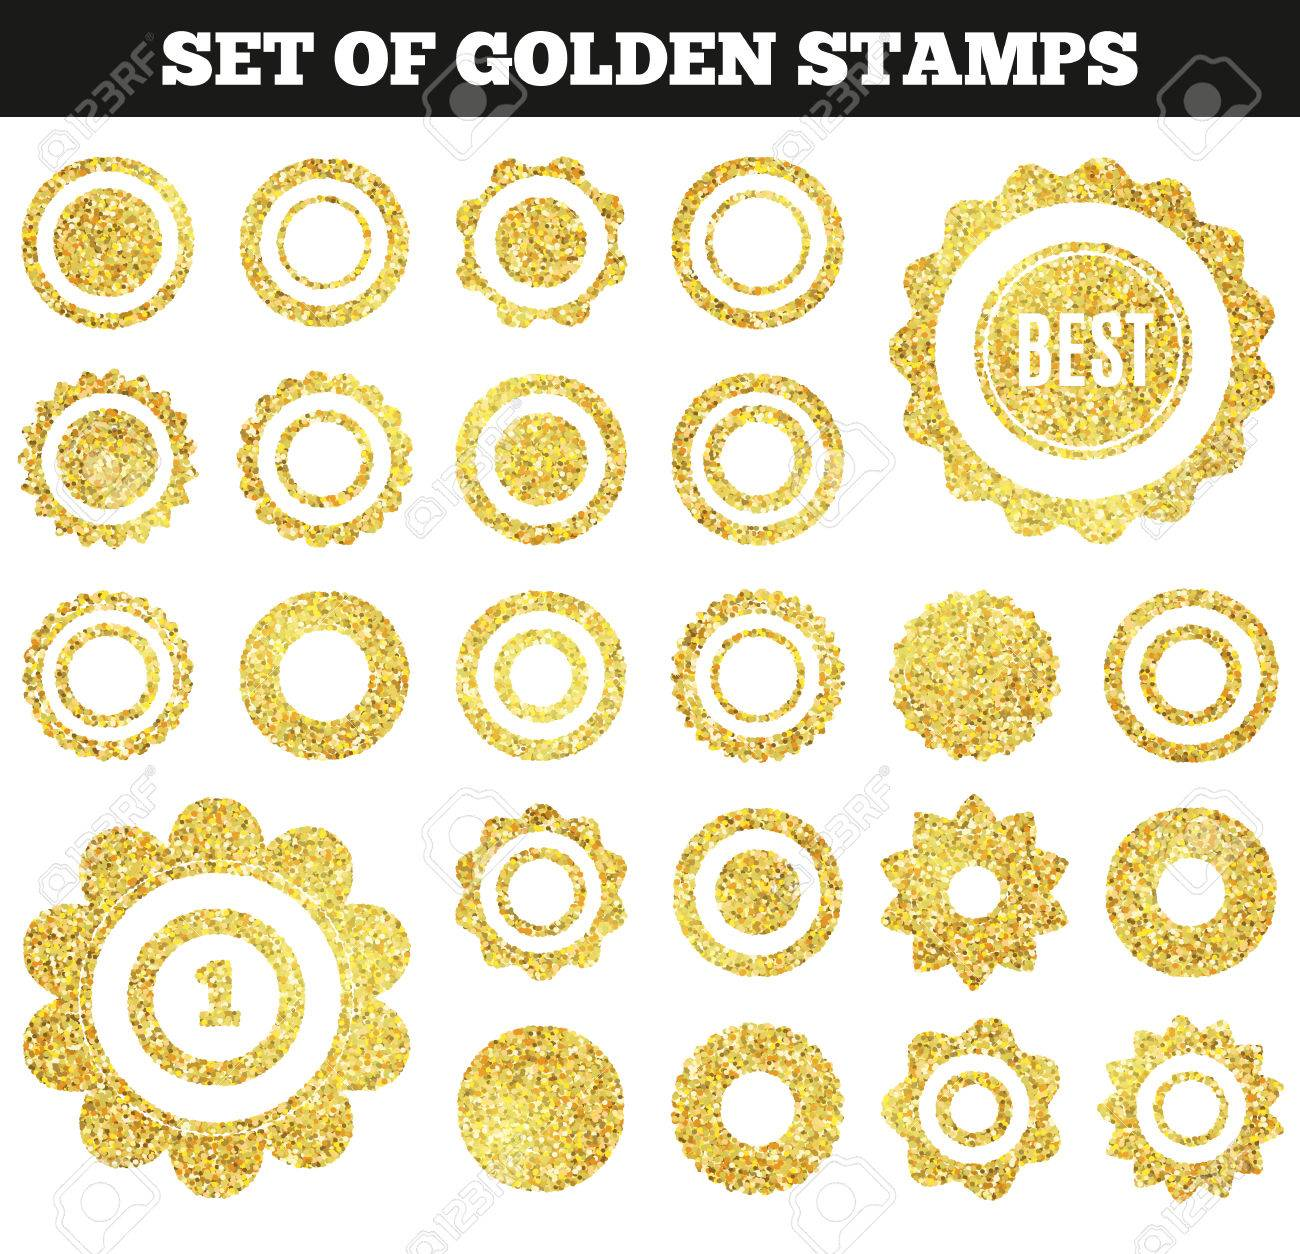 ee97586a39ac Set of golden grunge stamp. Round shapes. Vector illustration for premium  design. Yellow